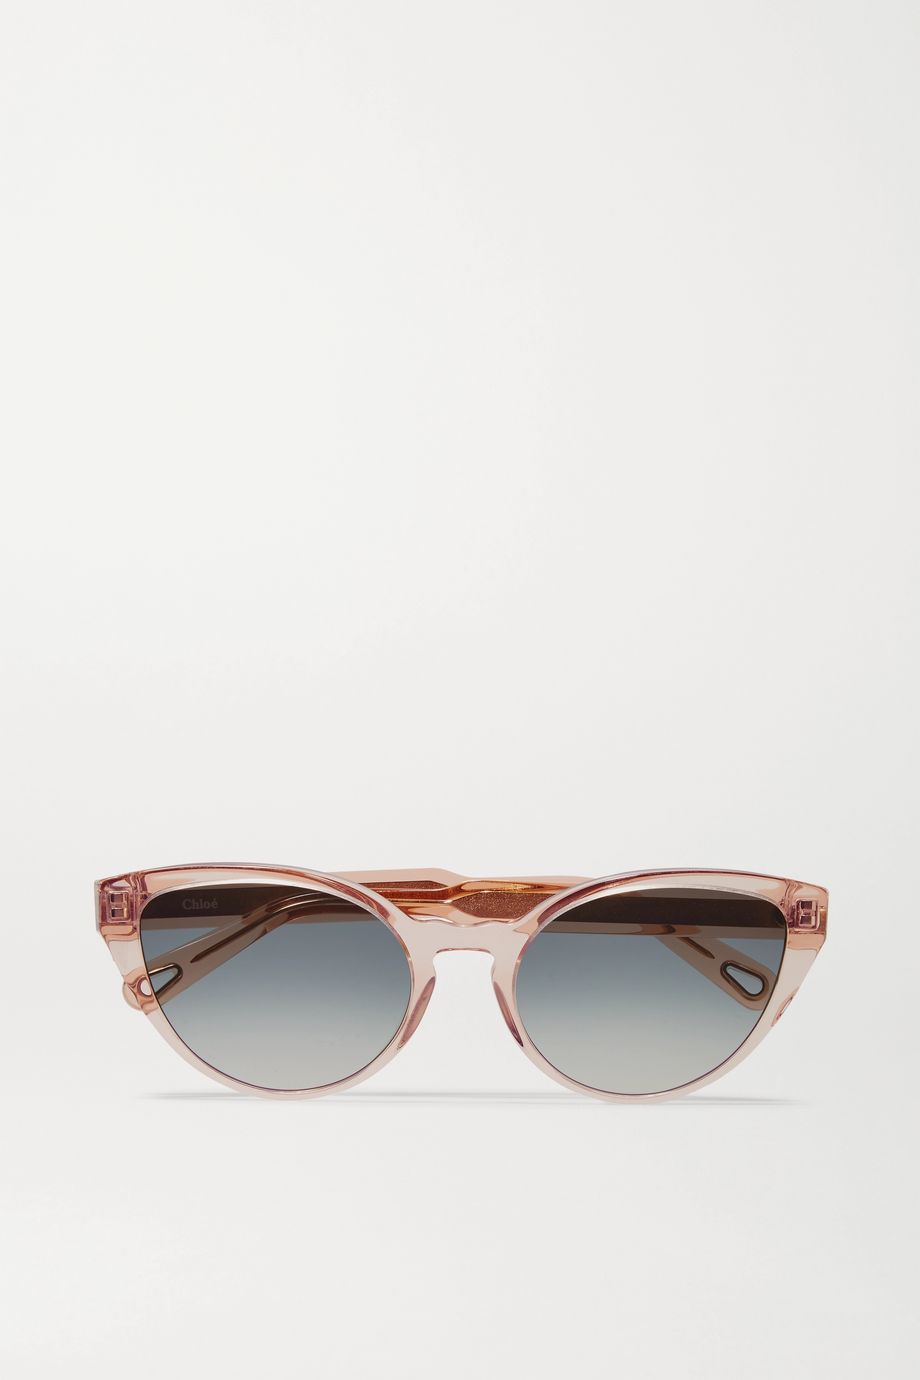 Chloé Willow Cat-Eye-Sonnenbrille aus Azetat